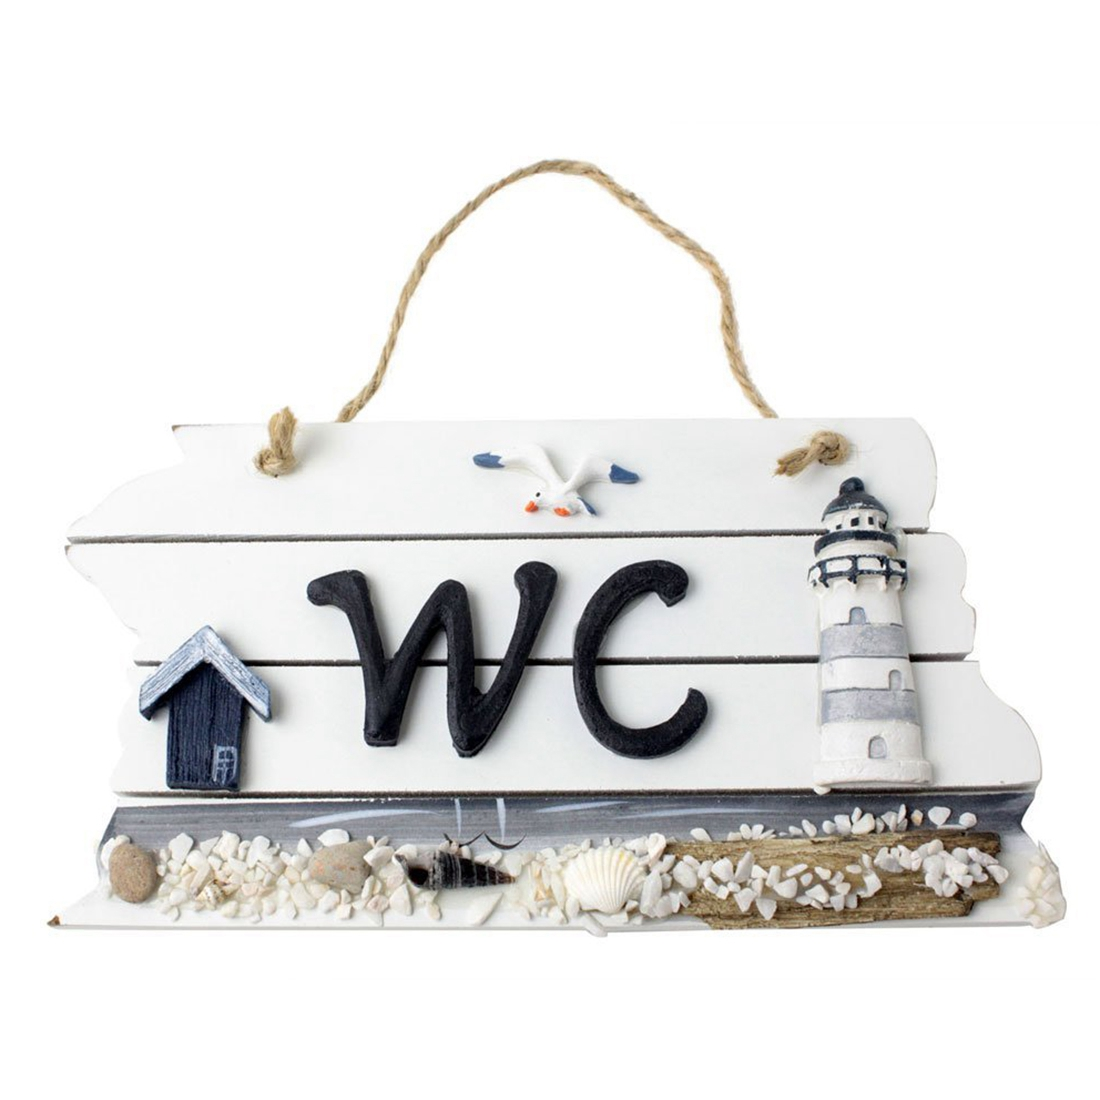 TFBC-Mediterranean Style Nordic Wooden WC Shingle Doorplate/Plaque/Sign